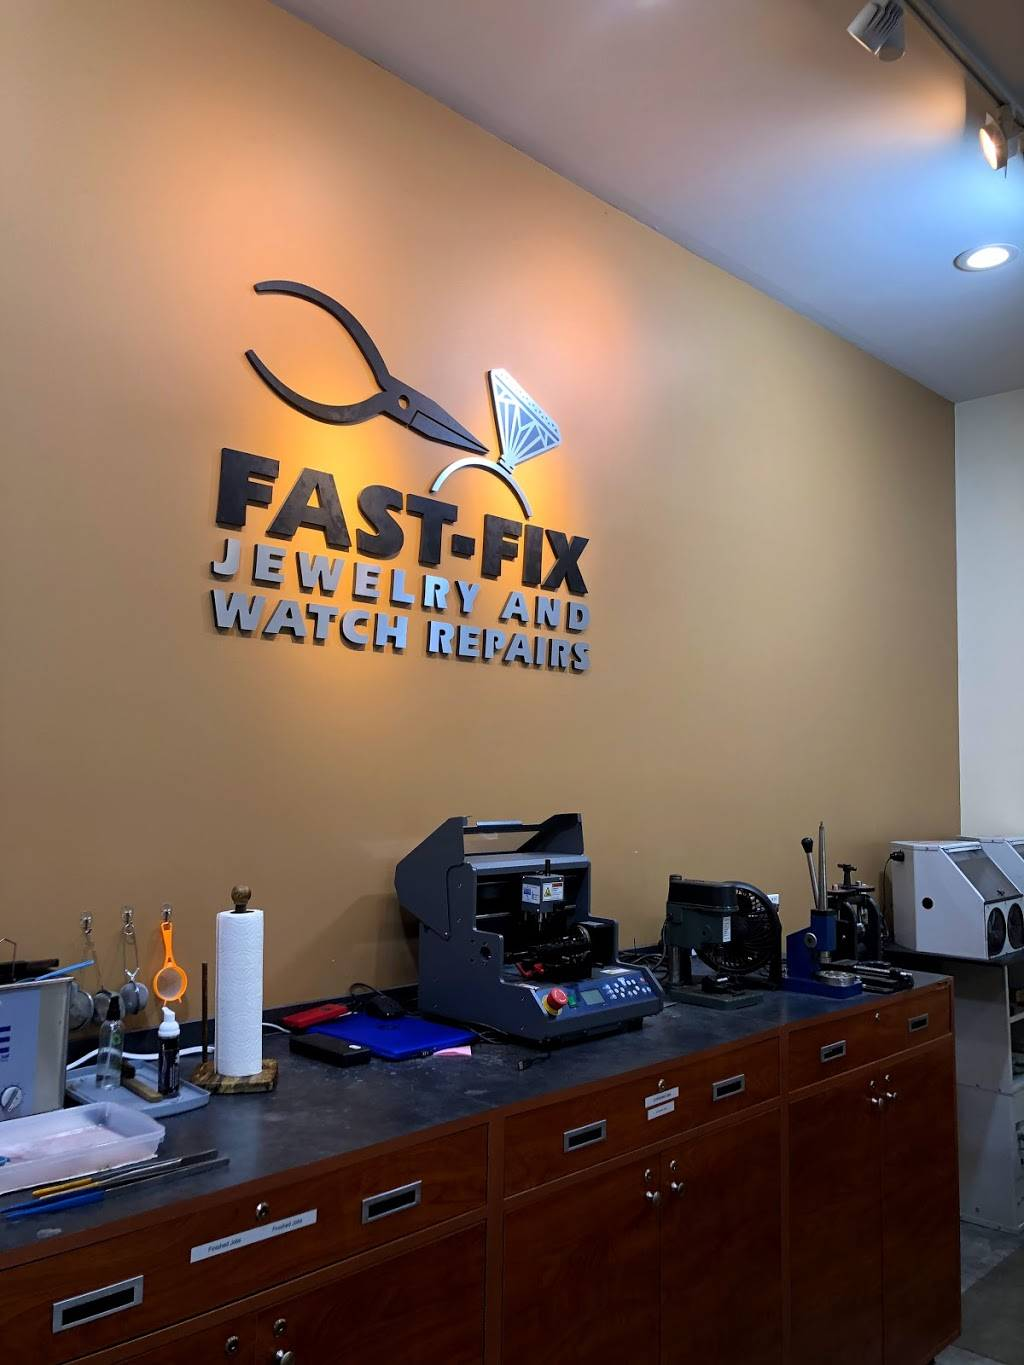 Fast-Fix Irvine Jewelry and Watch Repairs - health  | Photo 8 of 10 | Address: 15333 Culver Dr Ste 900B, Irvine, CA 92604, USA | Phone: (949) 536-5595